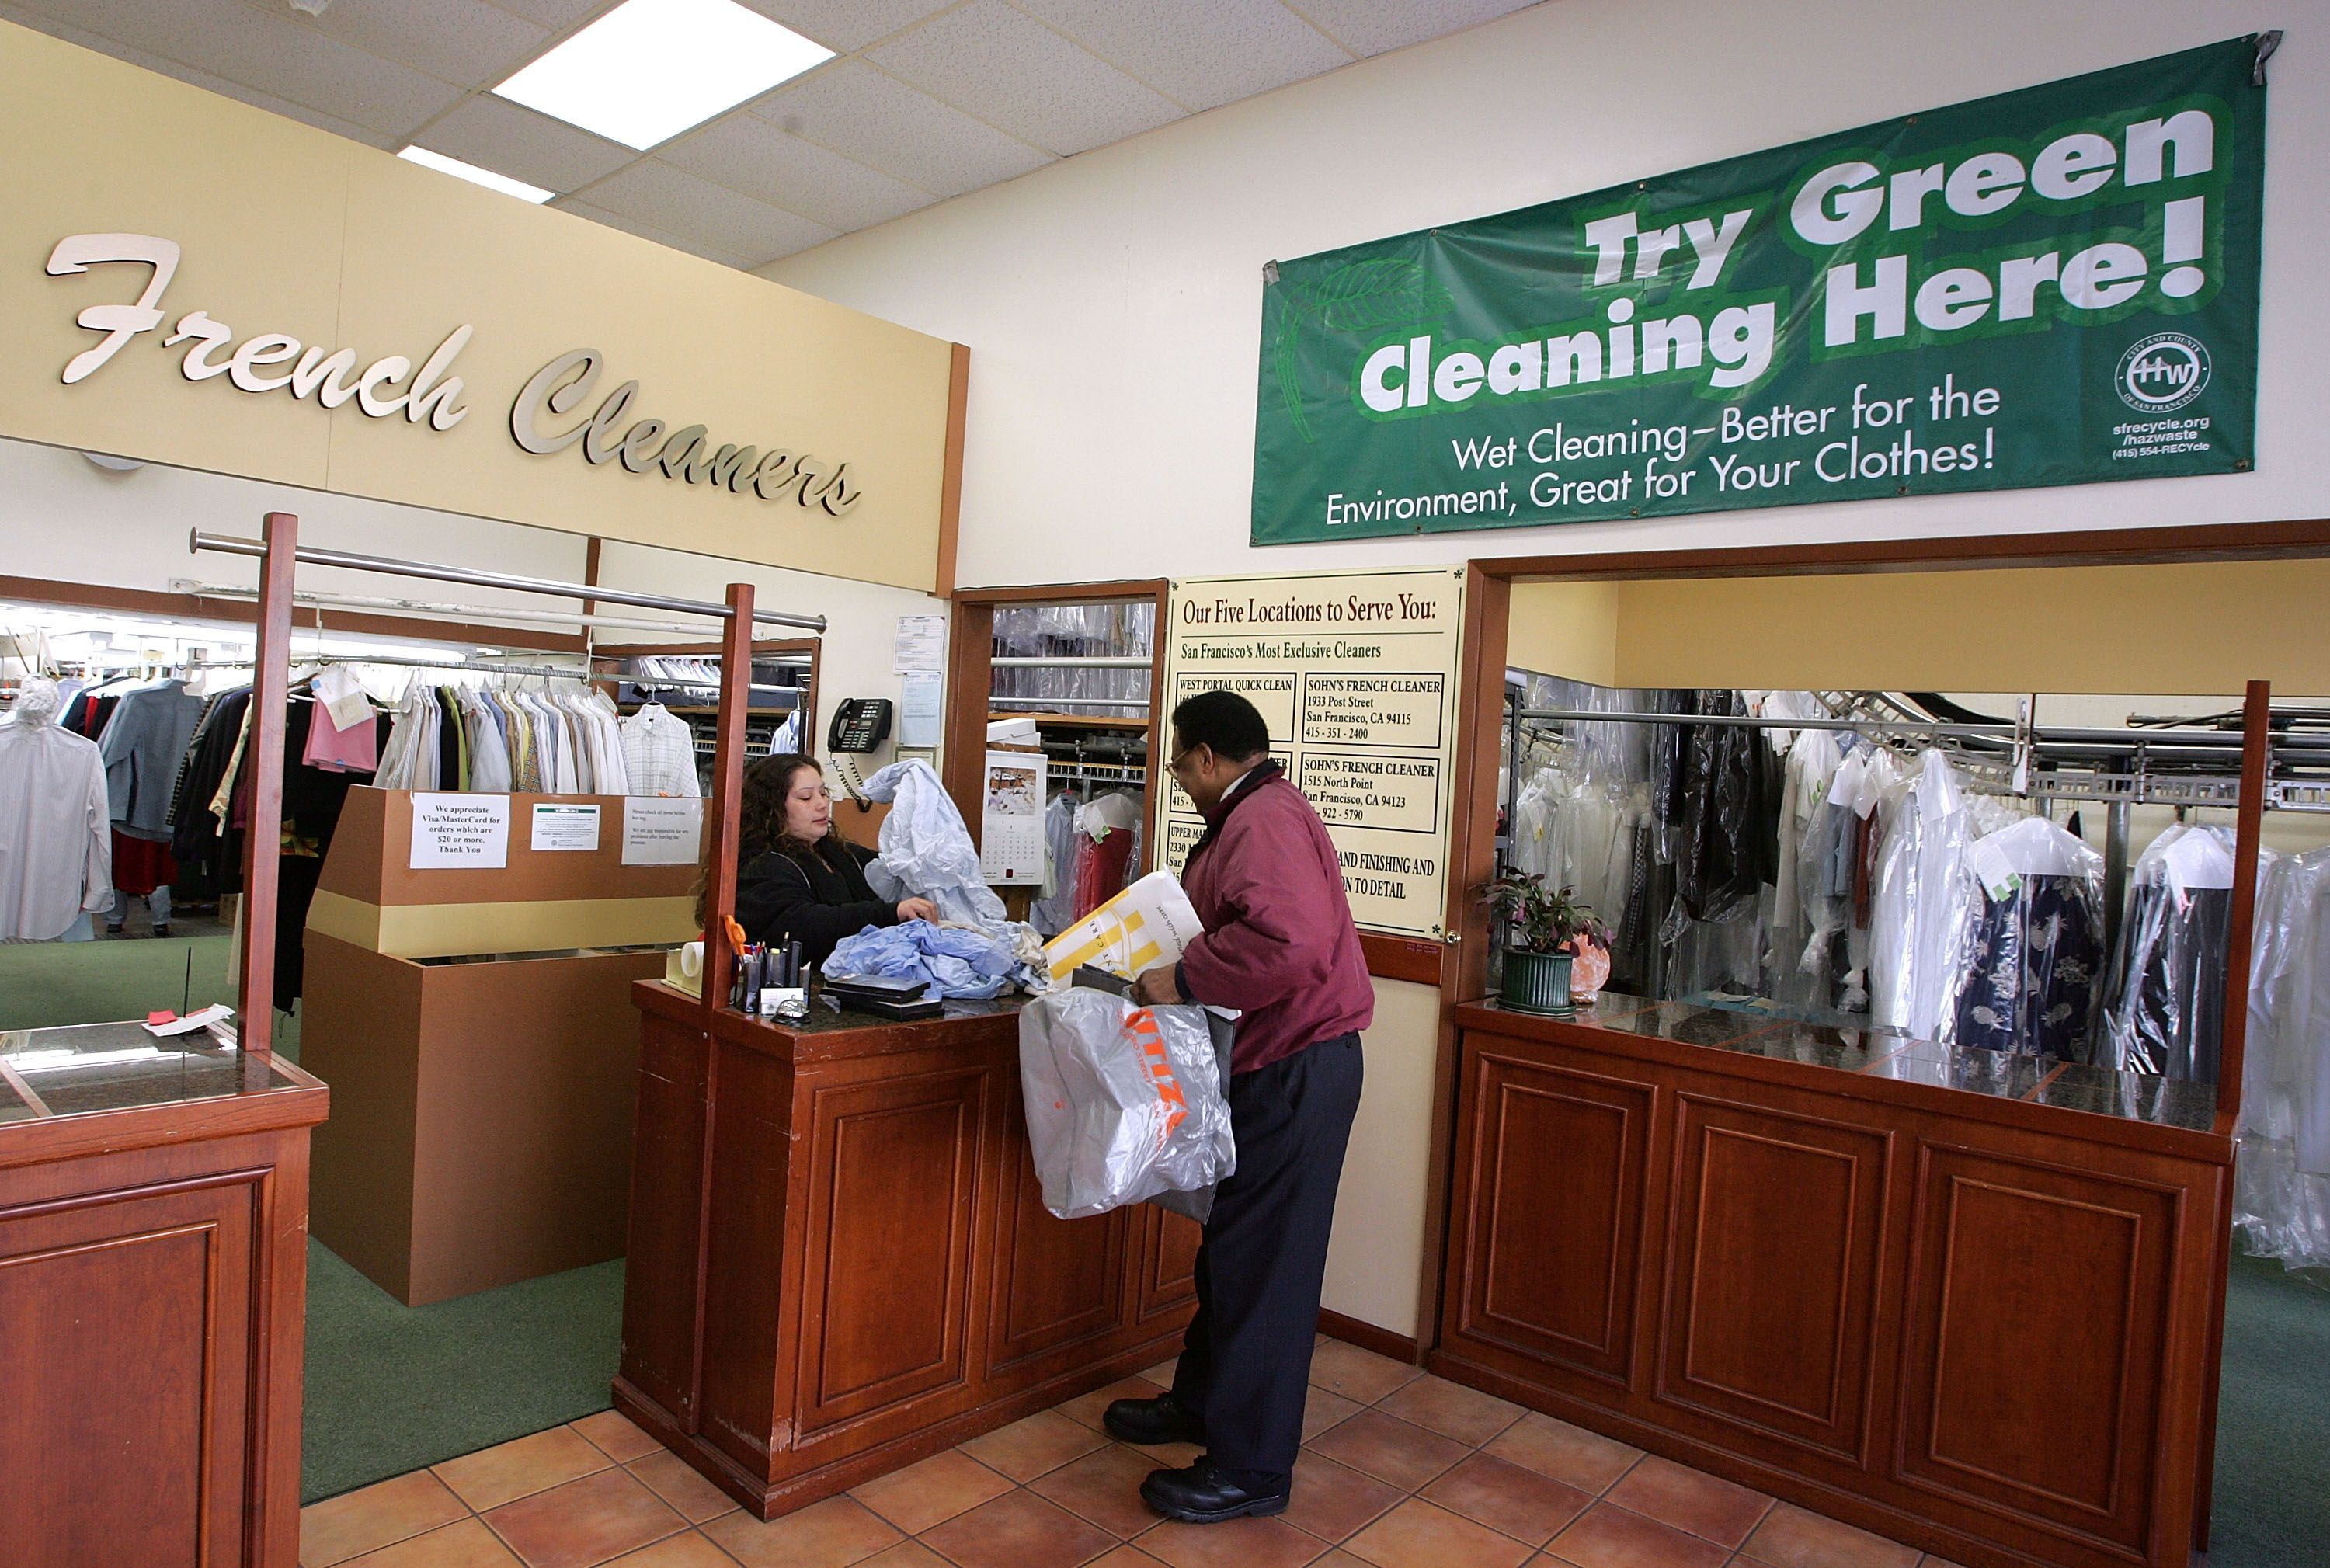 What Is Green Dry Cleaning Dry Cleaning Business What Is Green Dry Cleaning